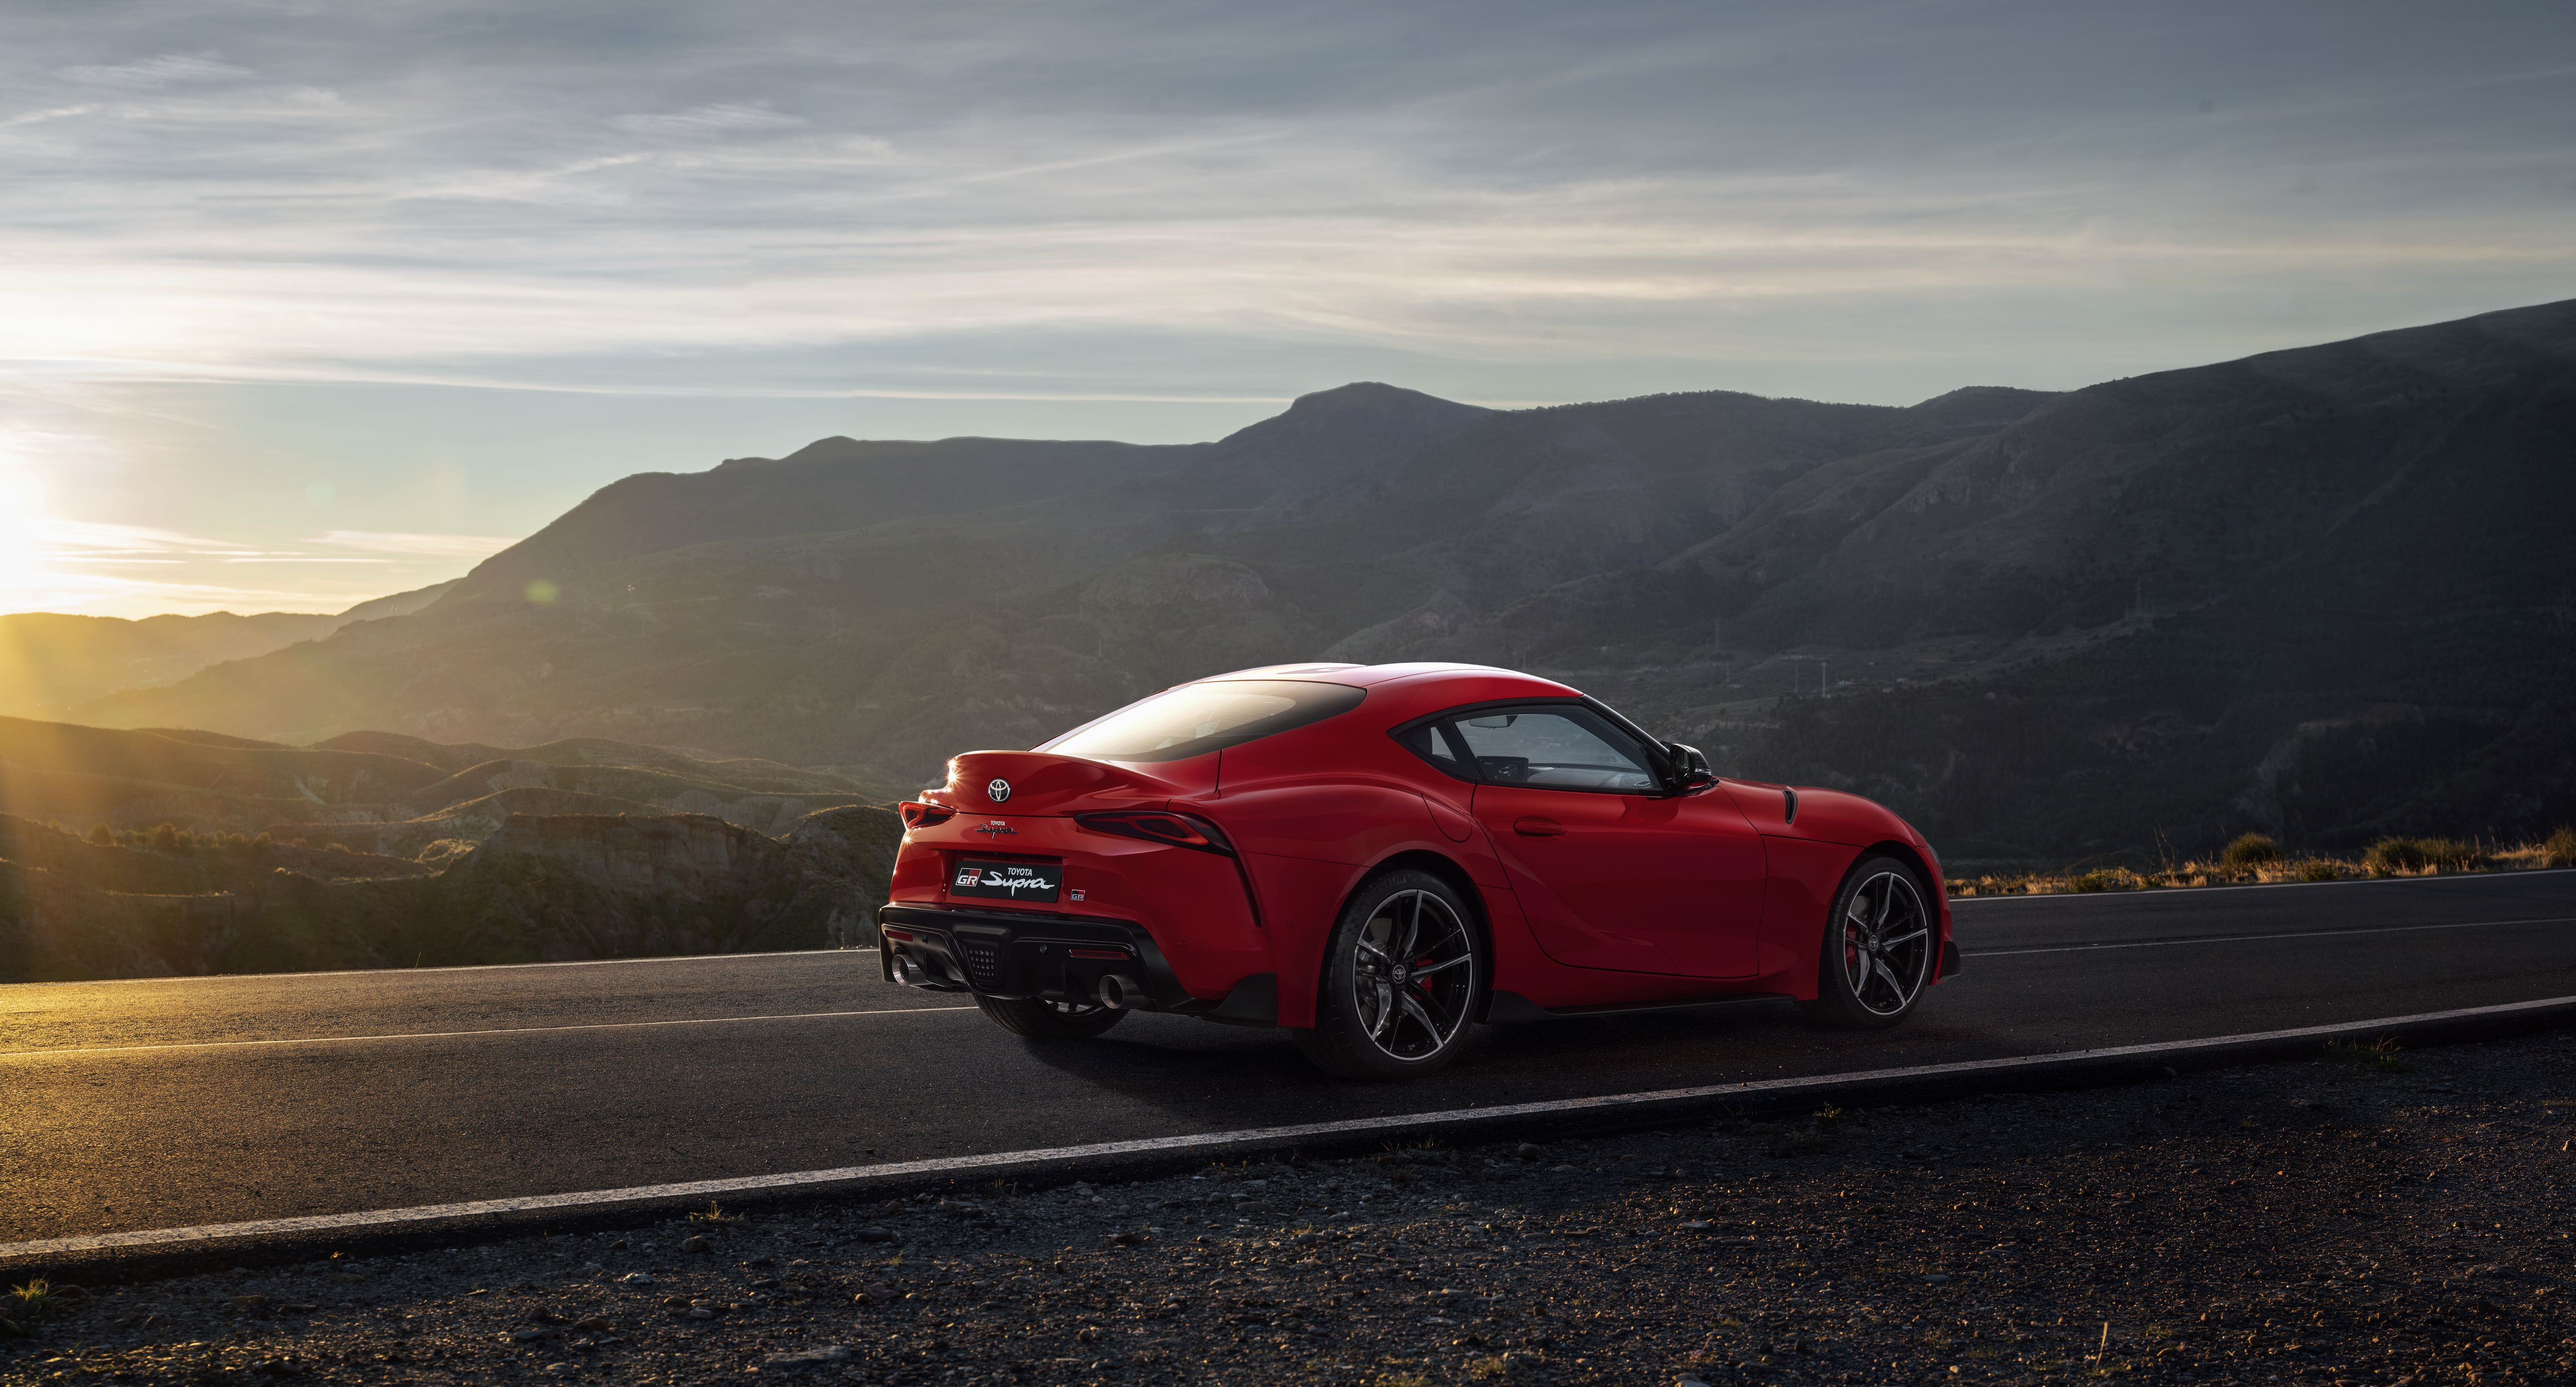 2020 Toyota Supra #532897 - Best quality free high resolution car ...